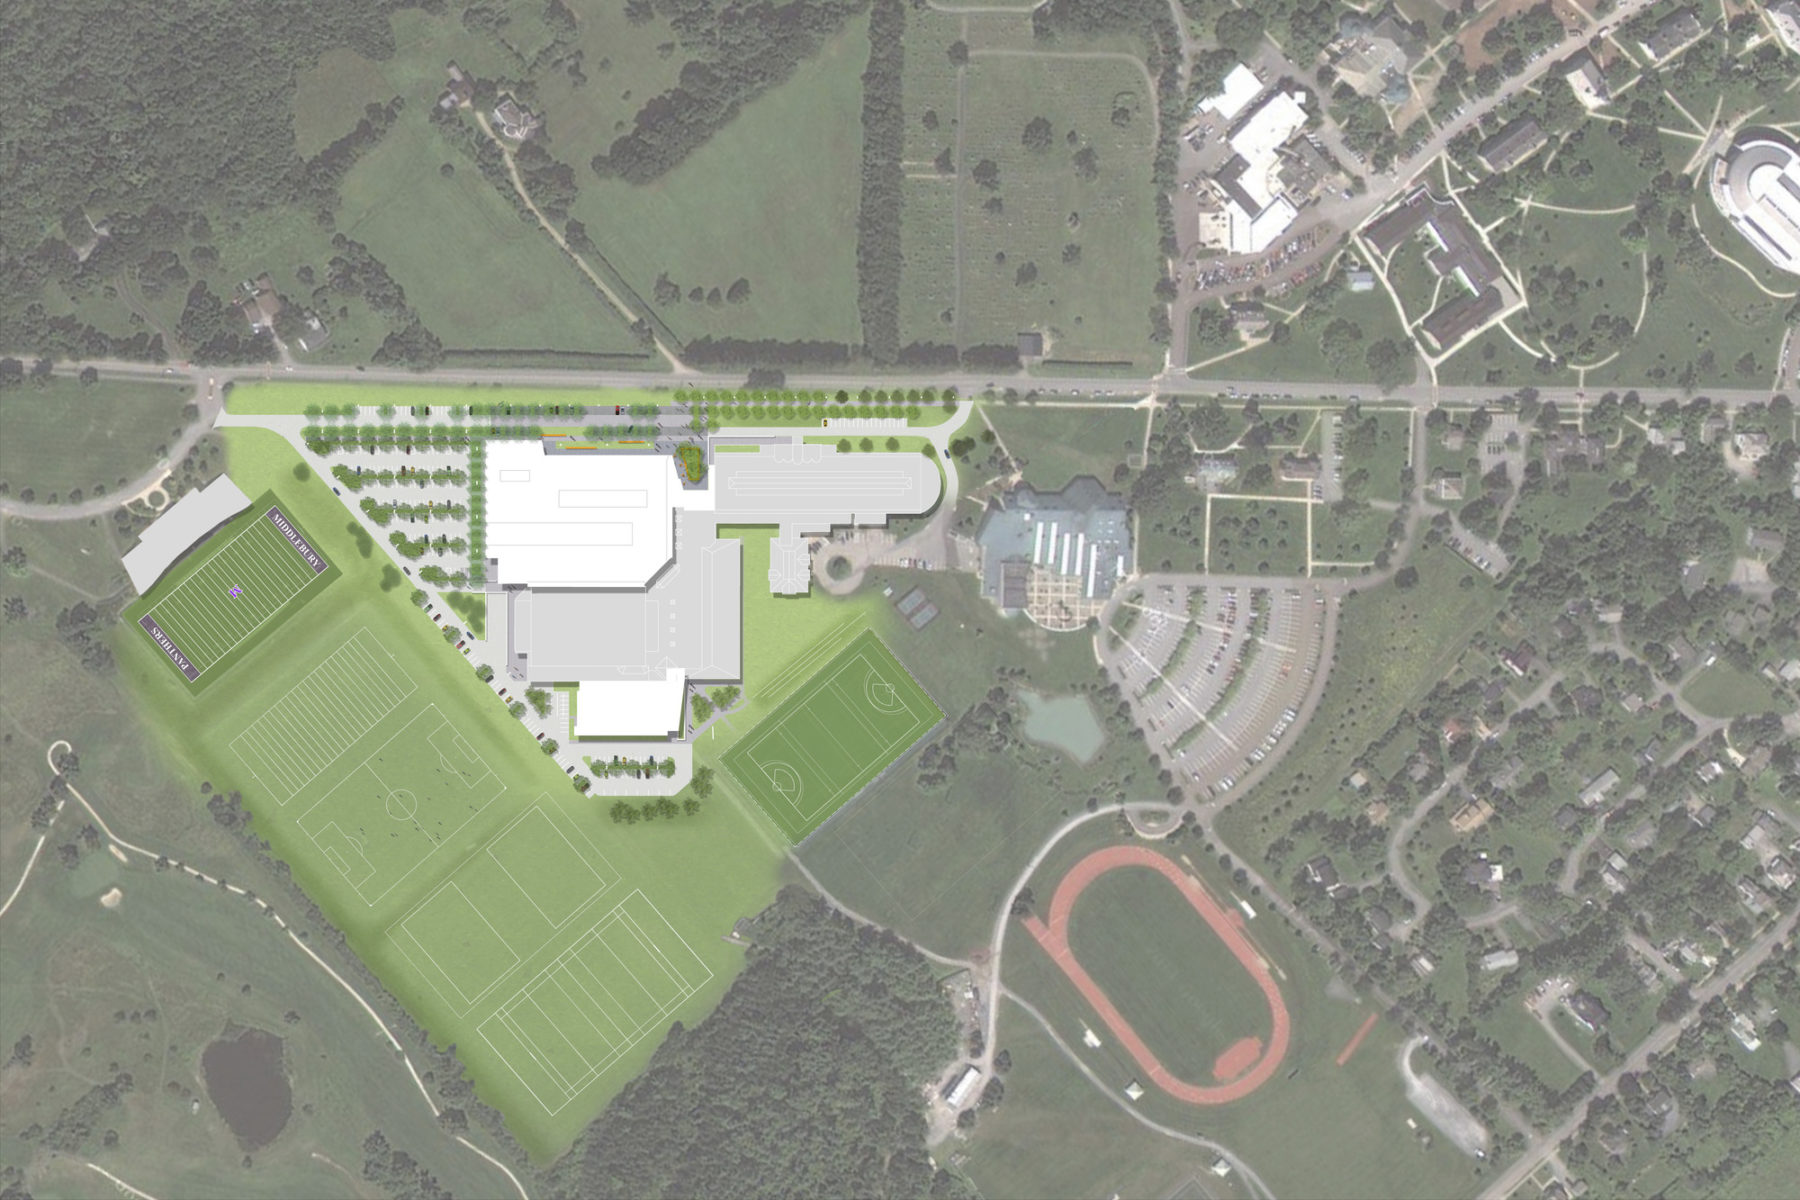 Plan for middlebury site